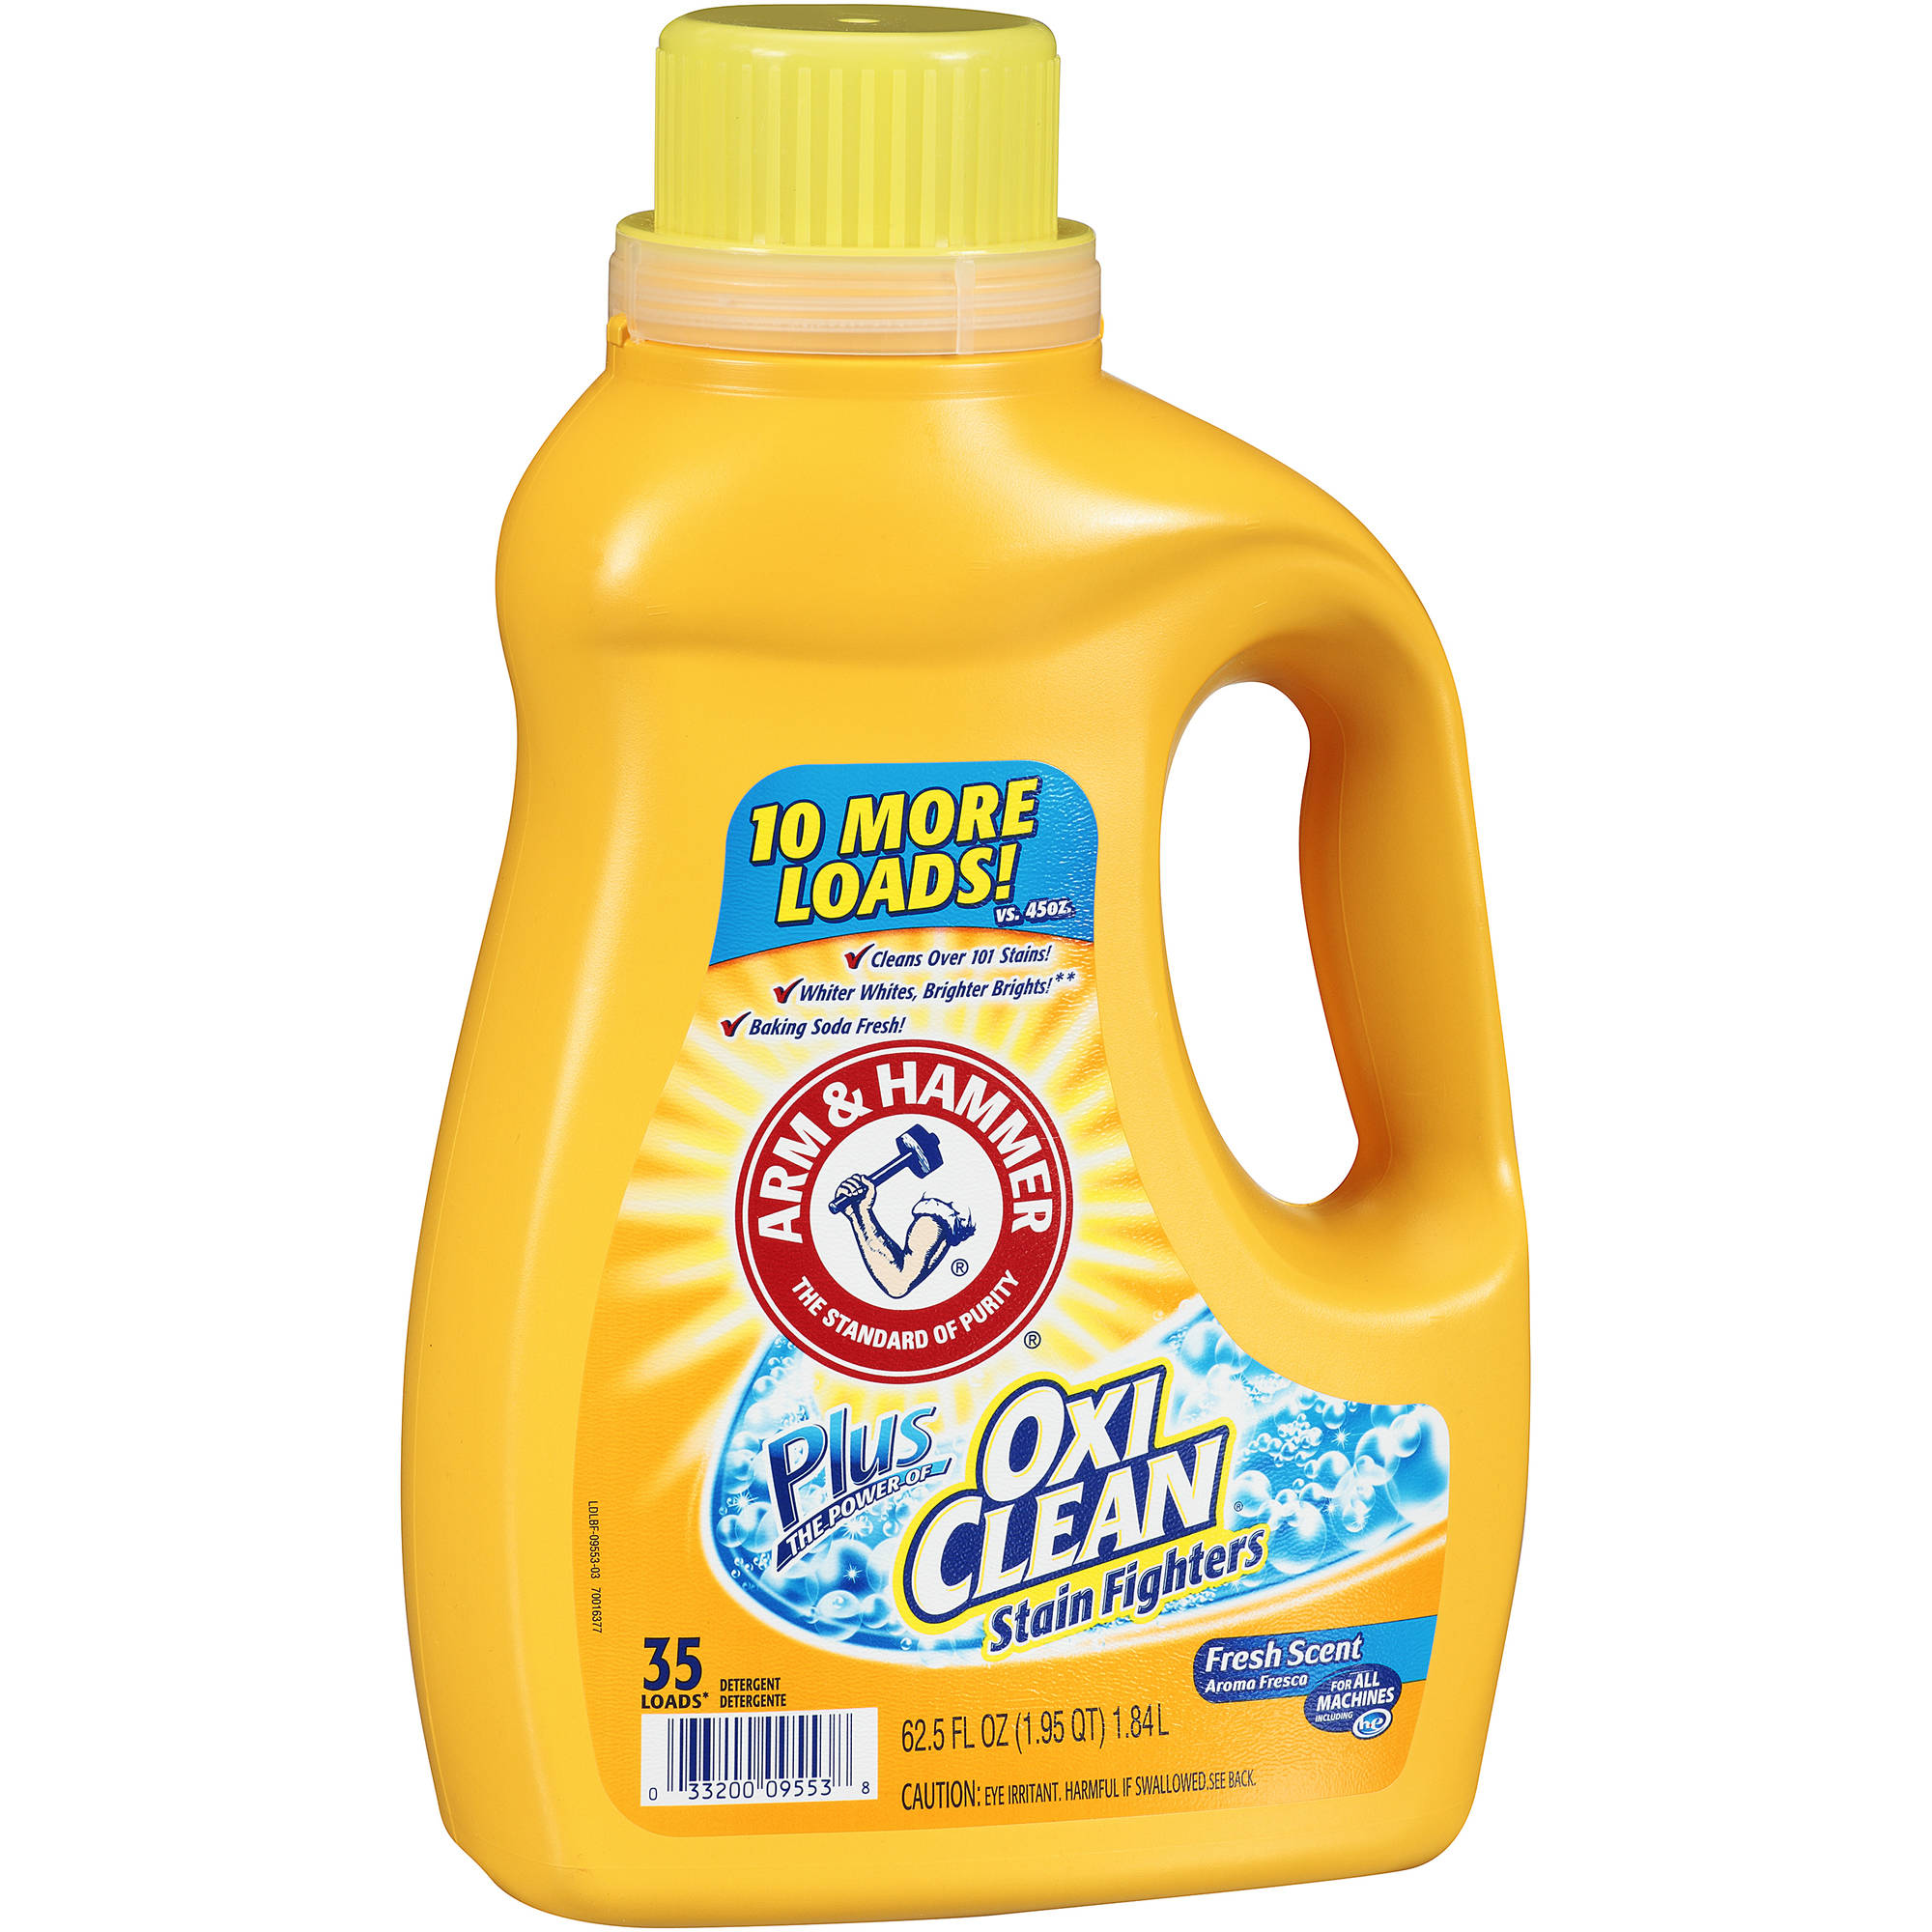 Arm & Hammer Plus Oxi Clean Stain Fighters Liquid Laundry Detergent, Fresh Scent,  62.5 oz